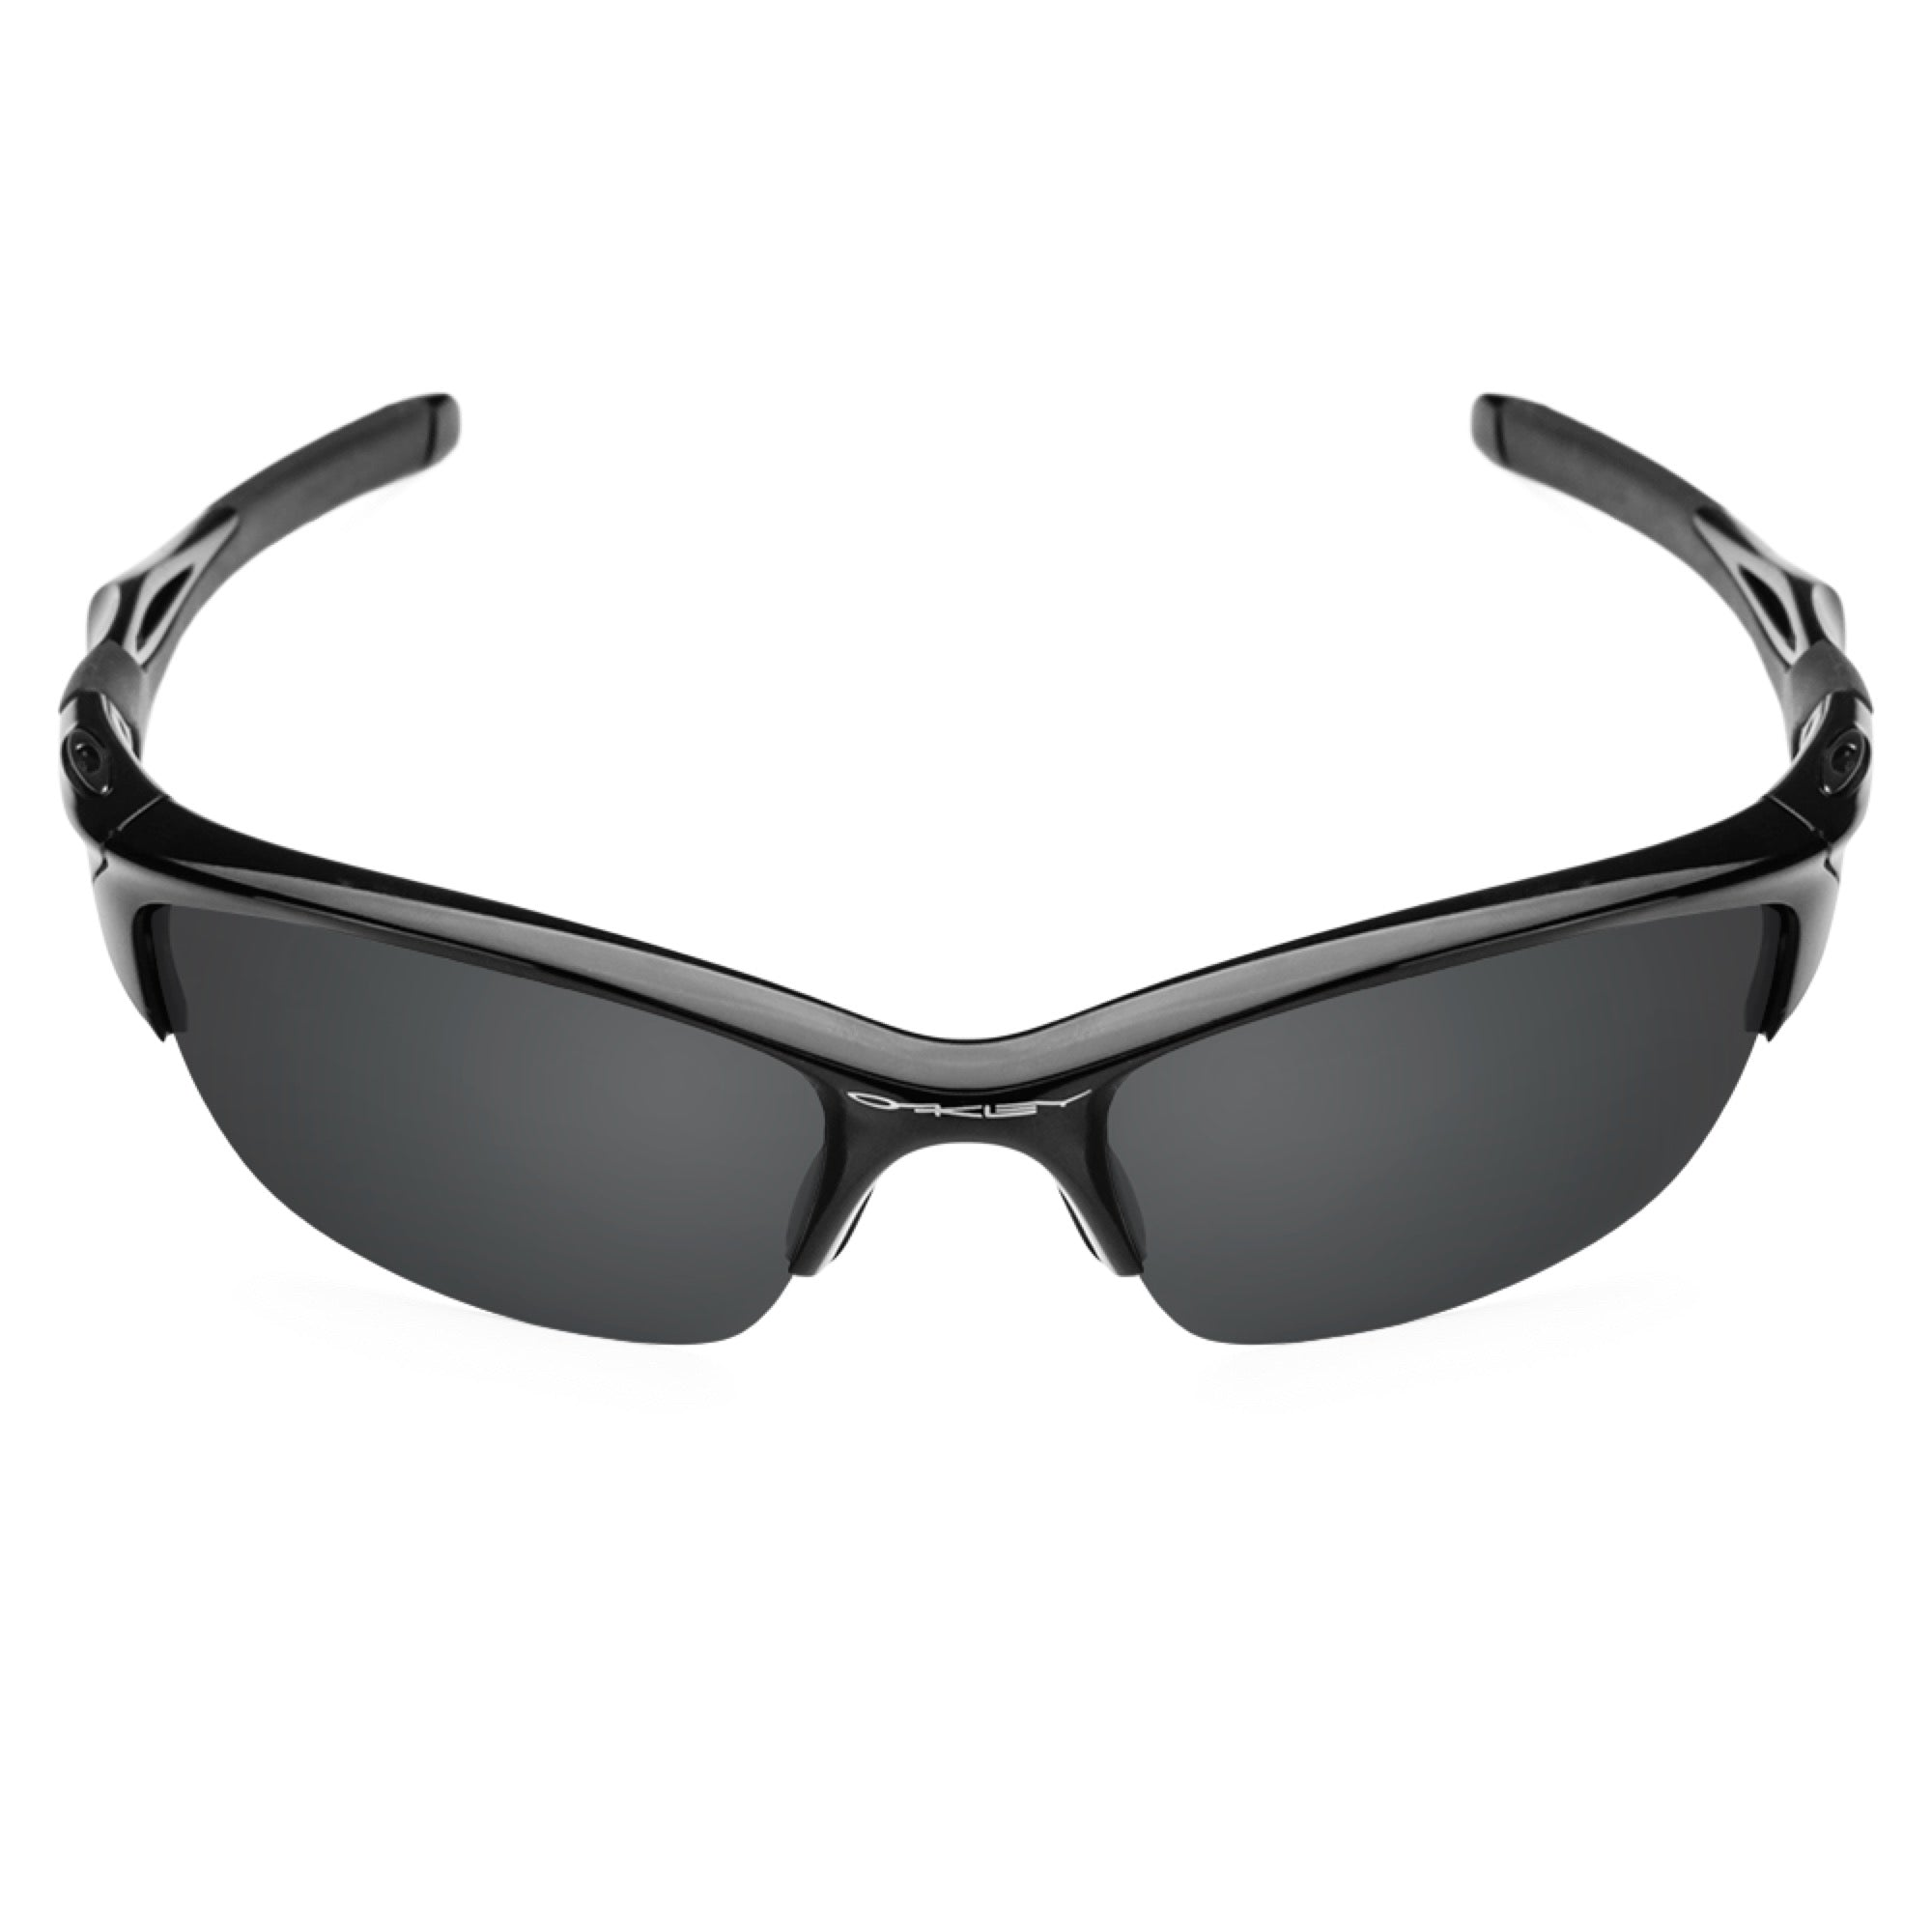 Revant black rubber kit installed on Oakley Half Jacket 2.0 sunglasses